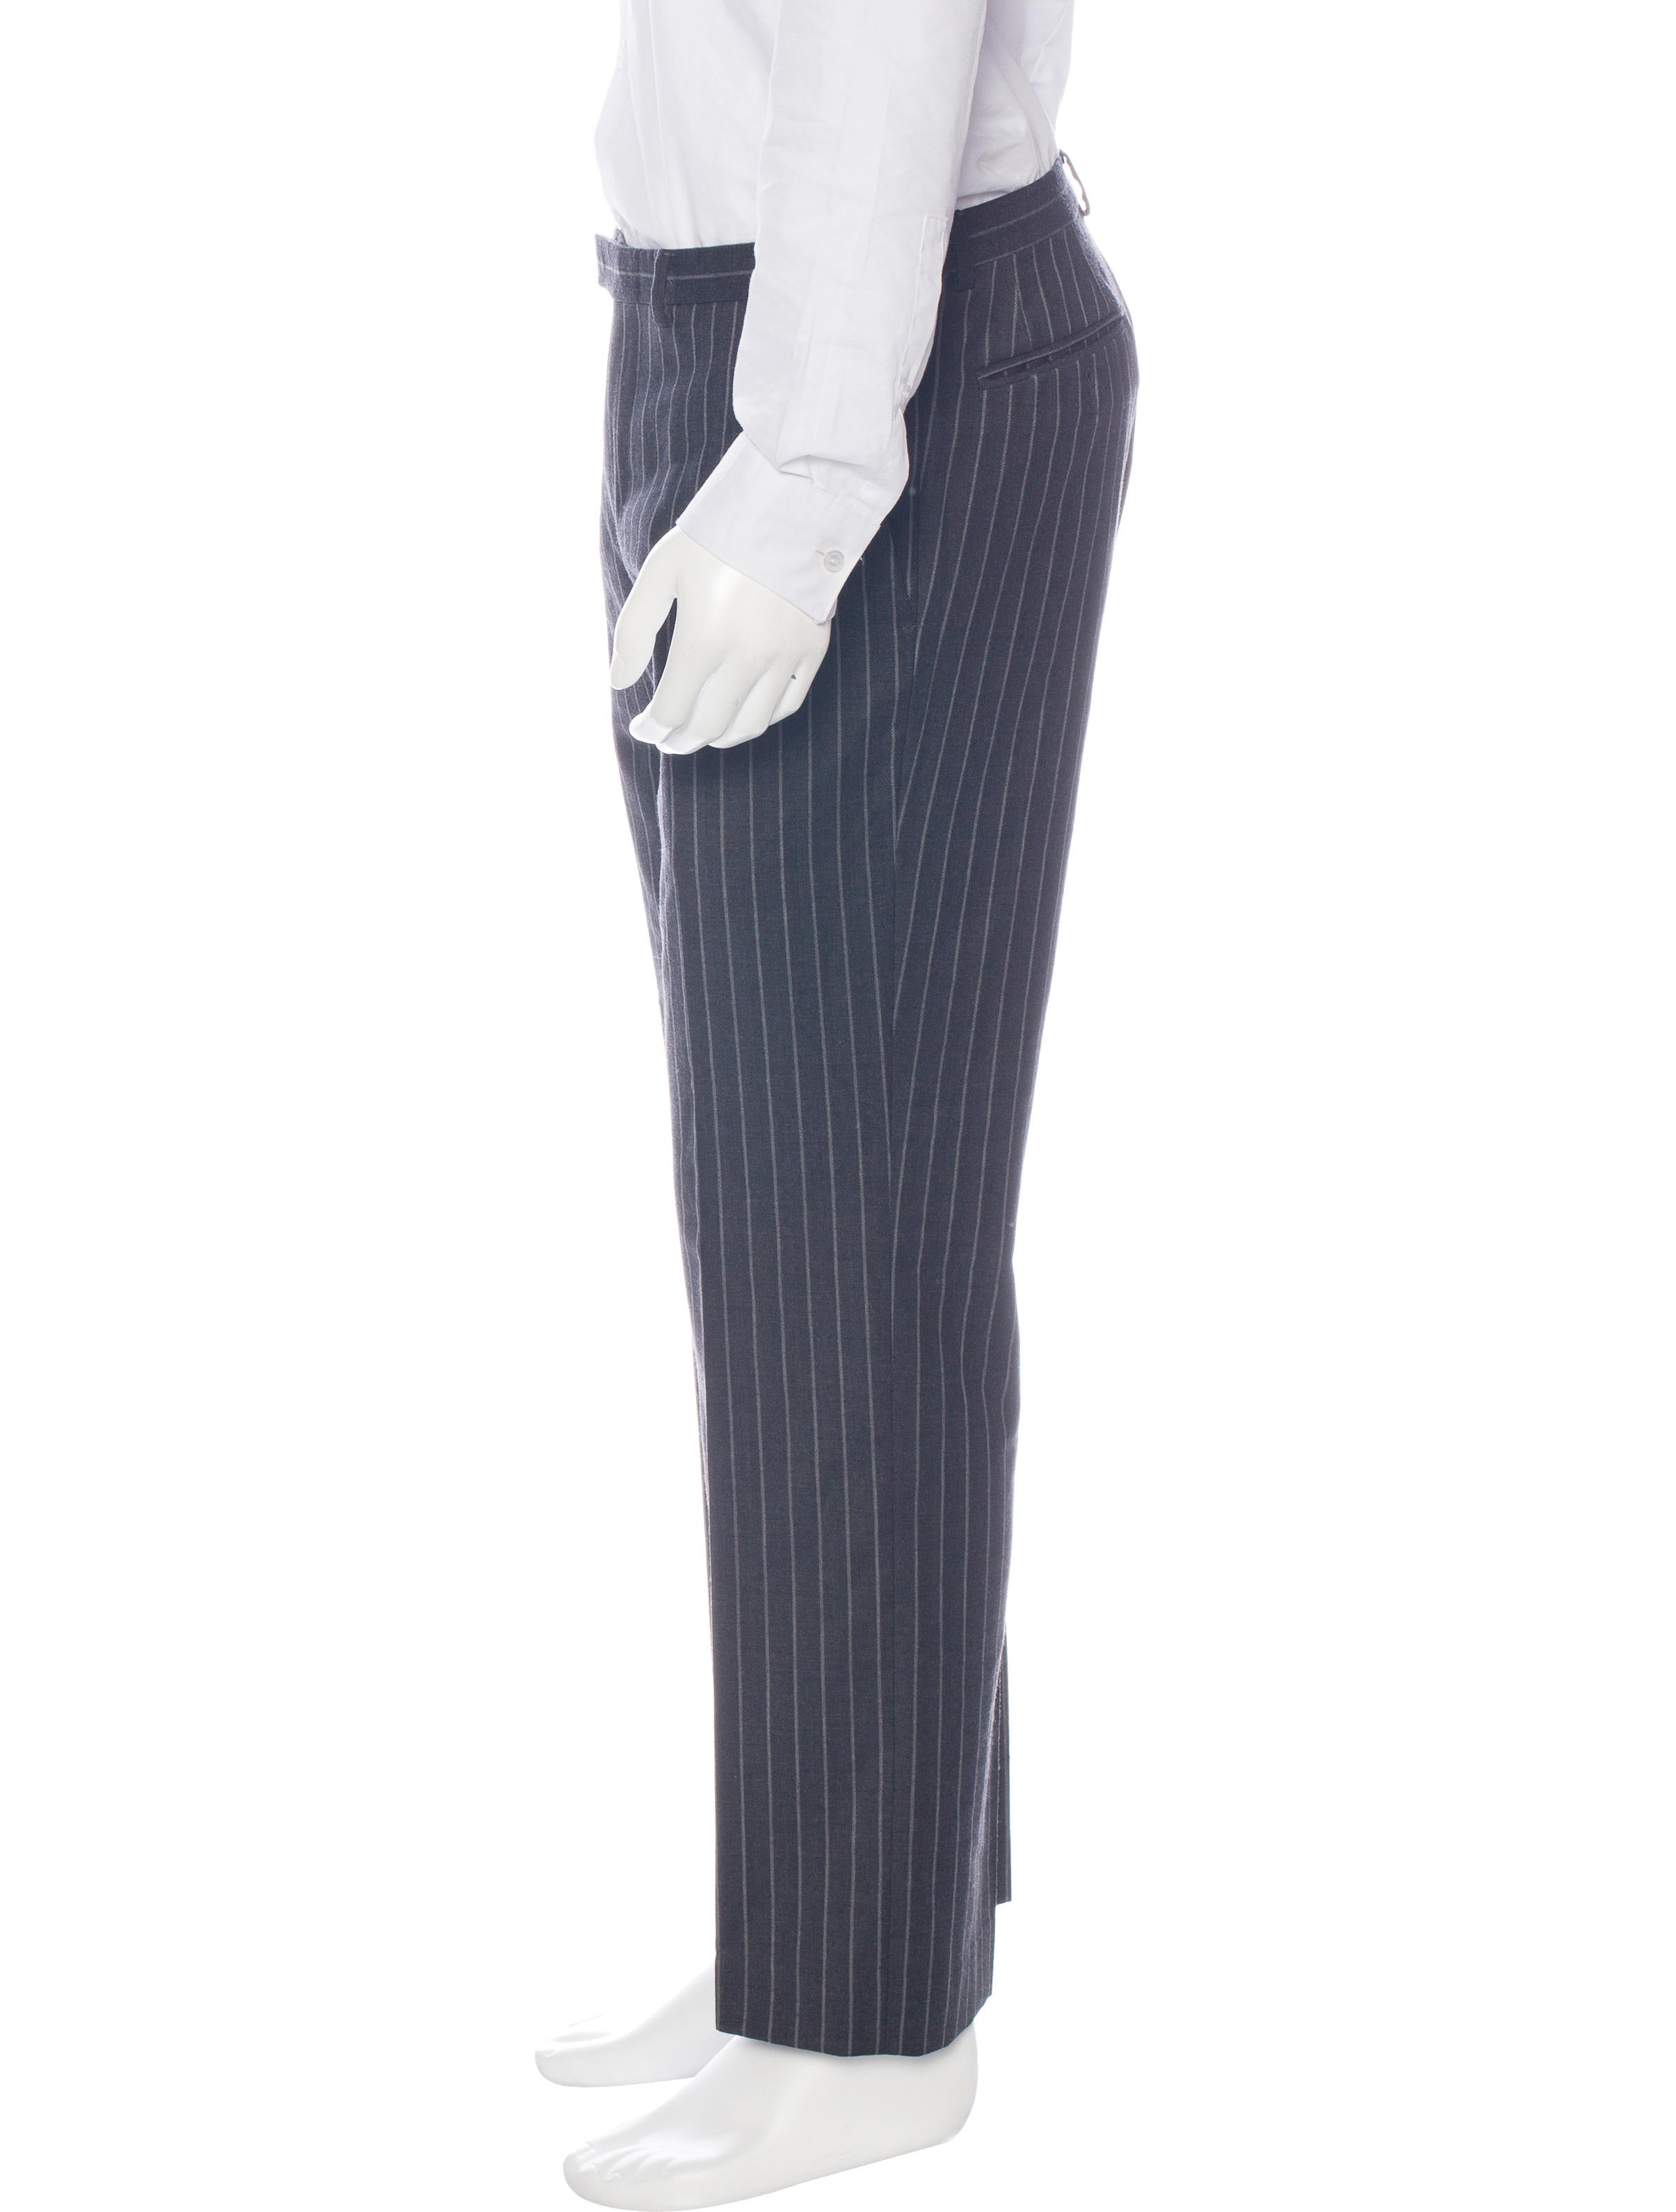 Free shipping BOTH ways on pants womens striped, from our vast selection of styles. Fast delivery, and 24/7/ real-person service with a smile. Click or call